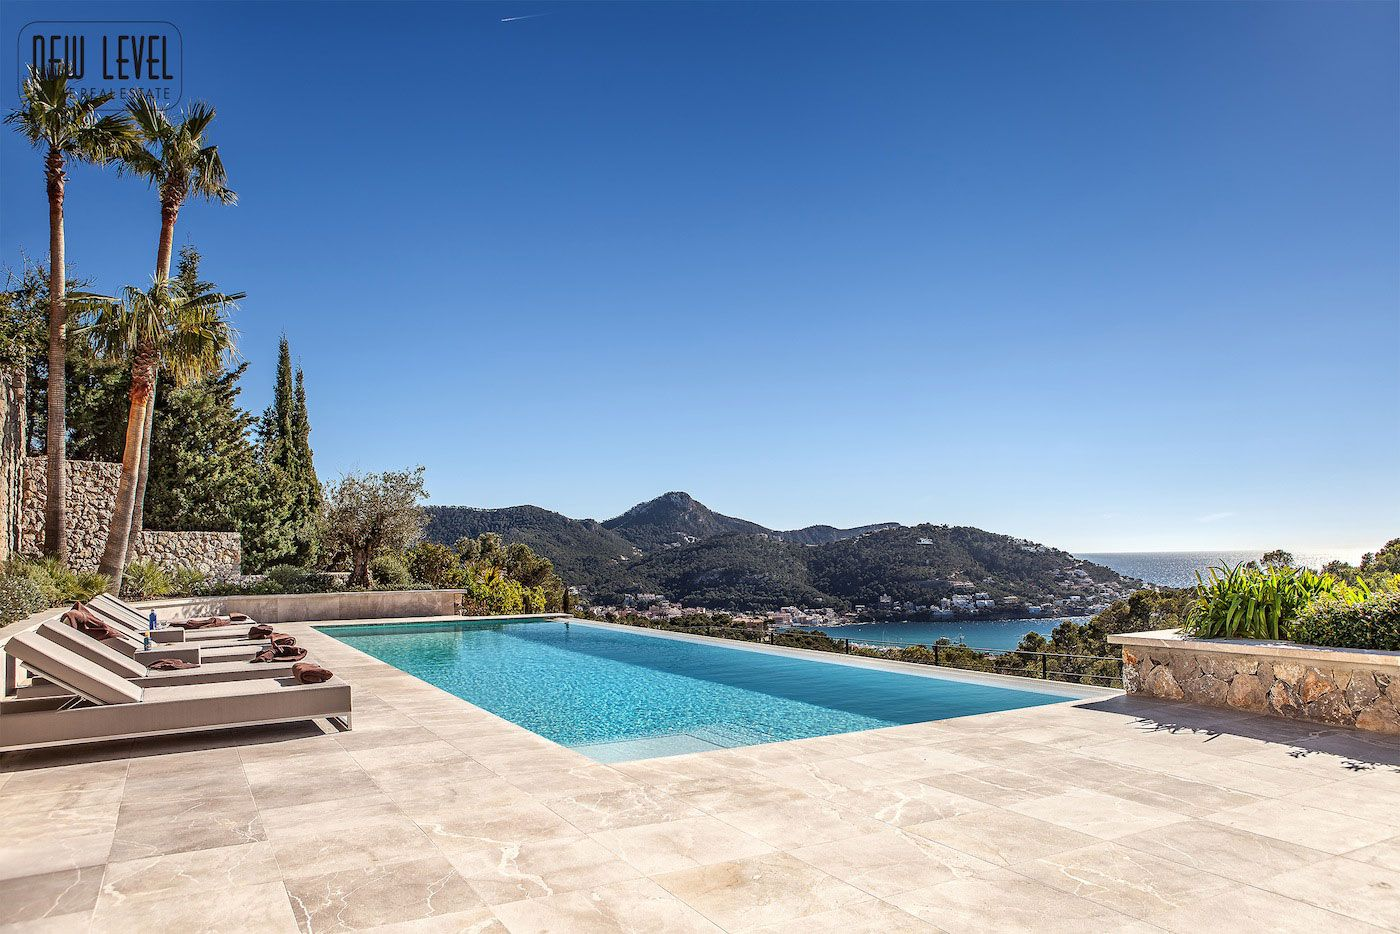 Luxury Villa With Fantastic Views Over the Hills of Mallorca-05